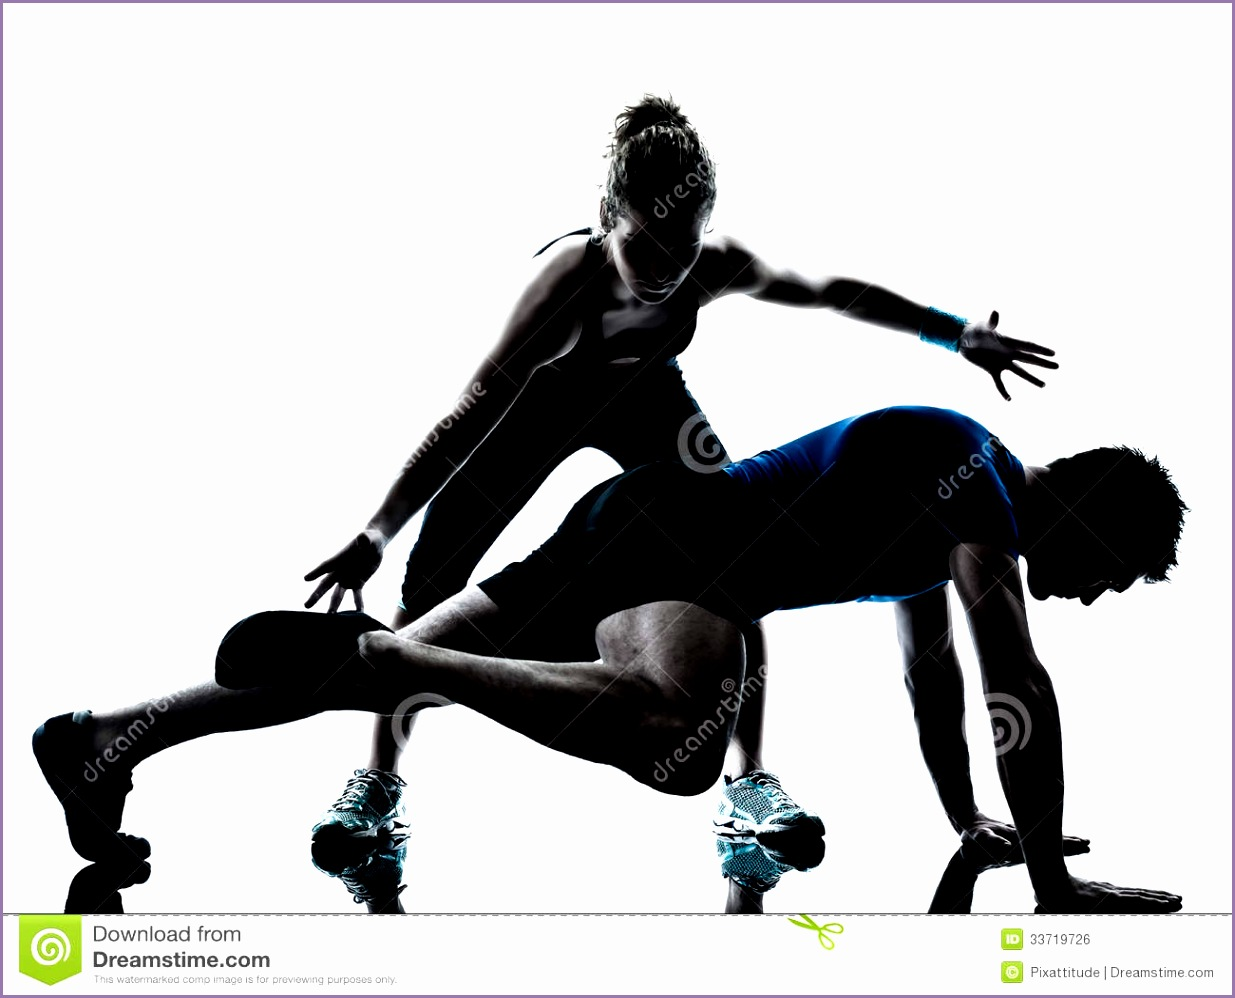 royalty free stock image man woman exercising legs workout fitness one caucasian couple men women personal trainer coach silhouette studio isolated image